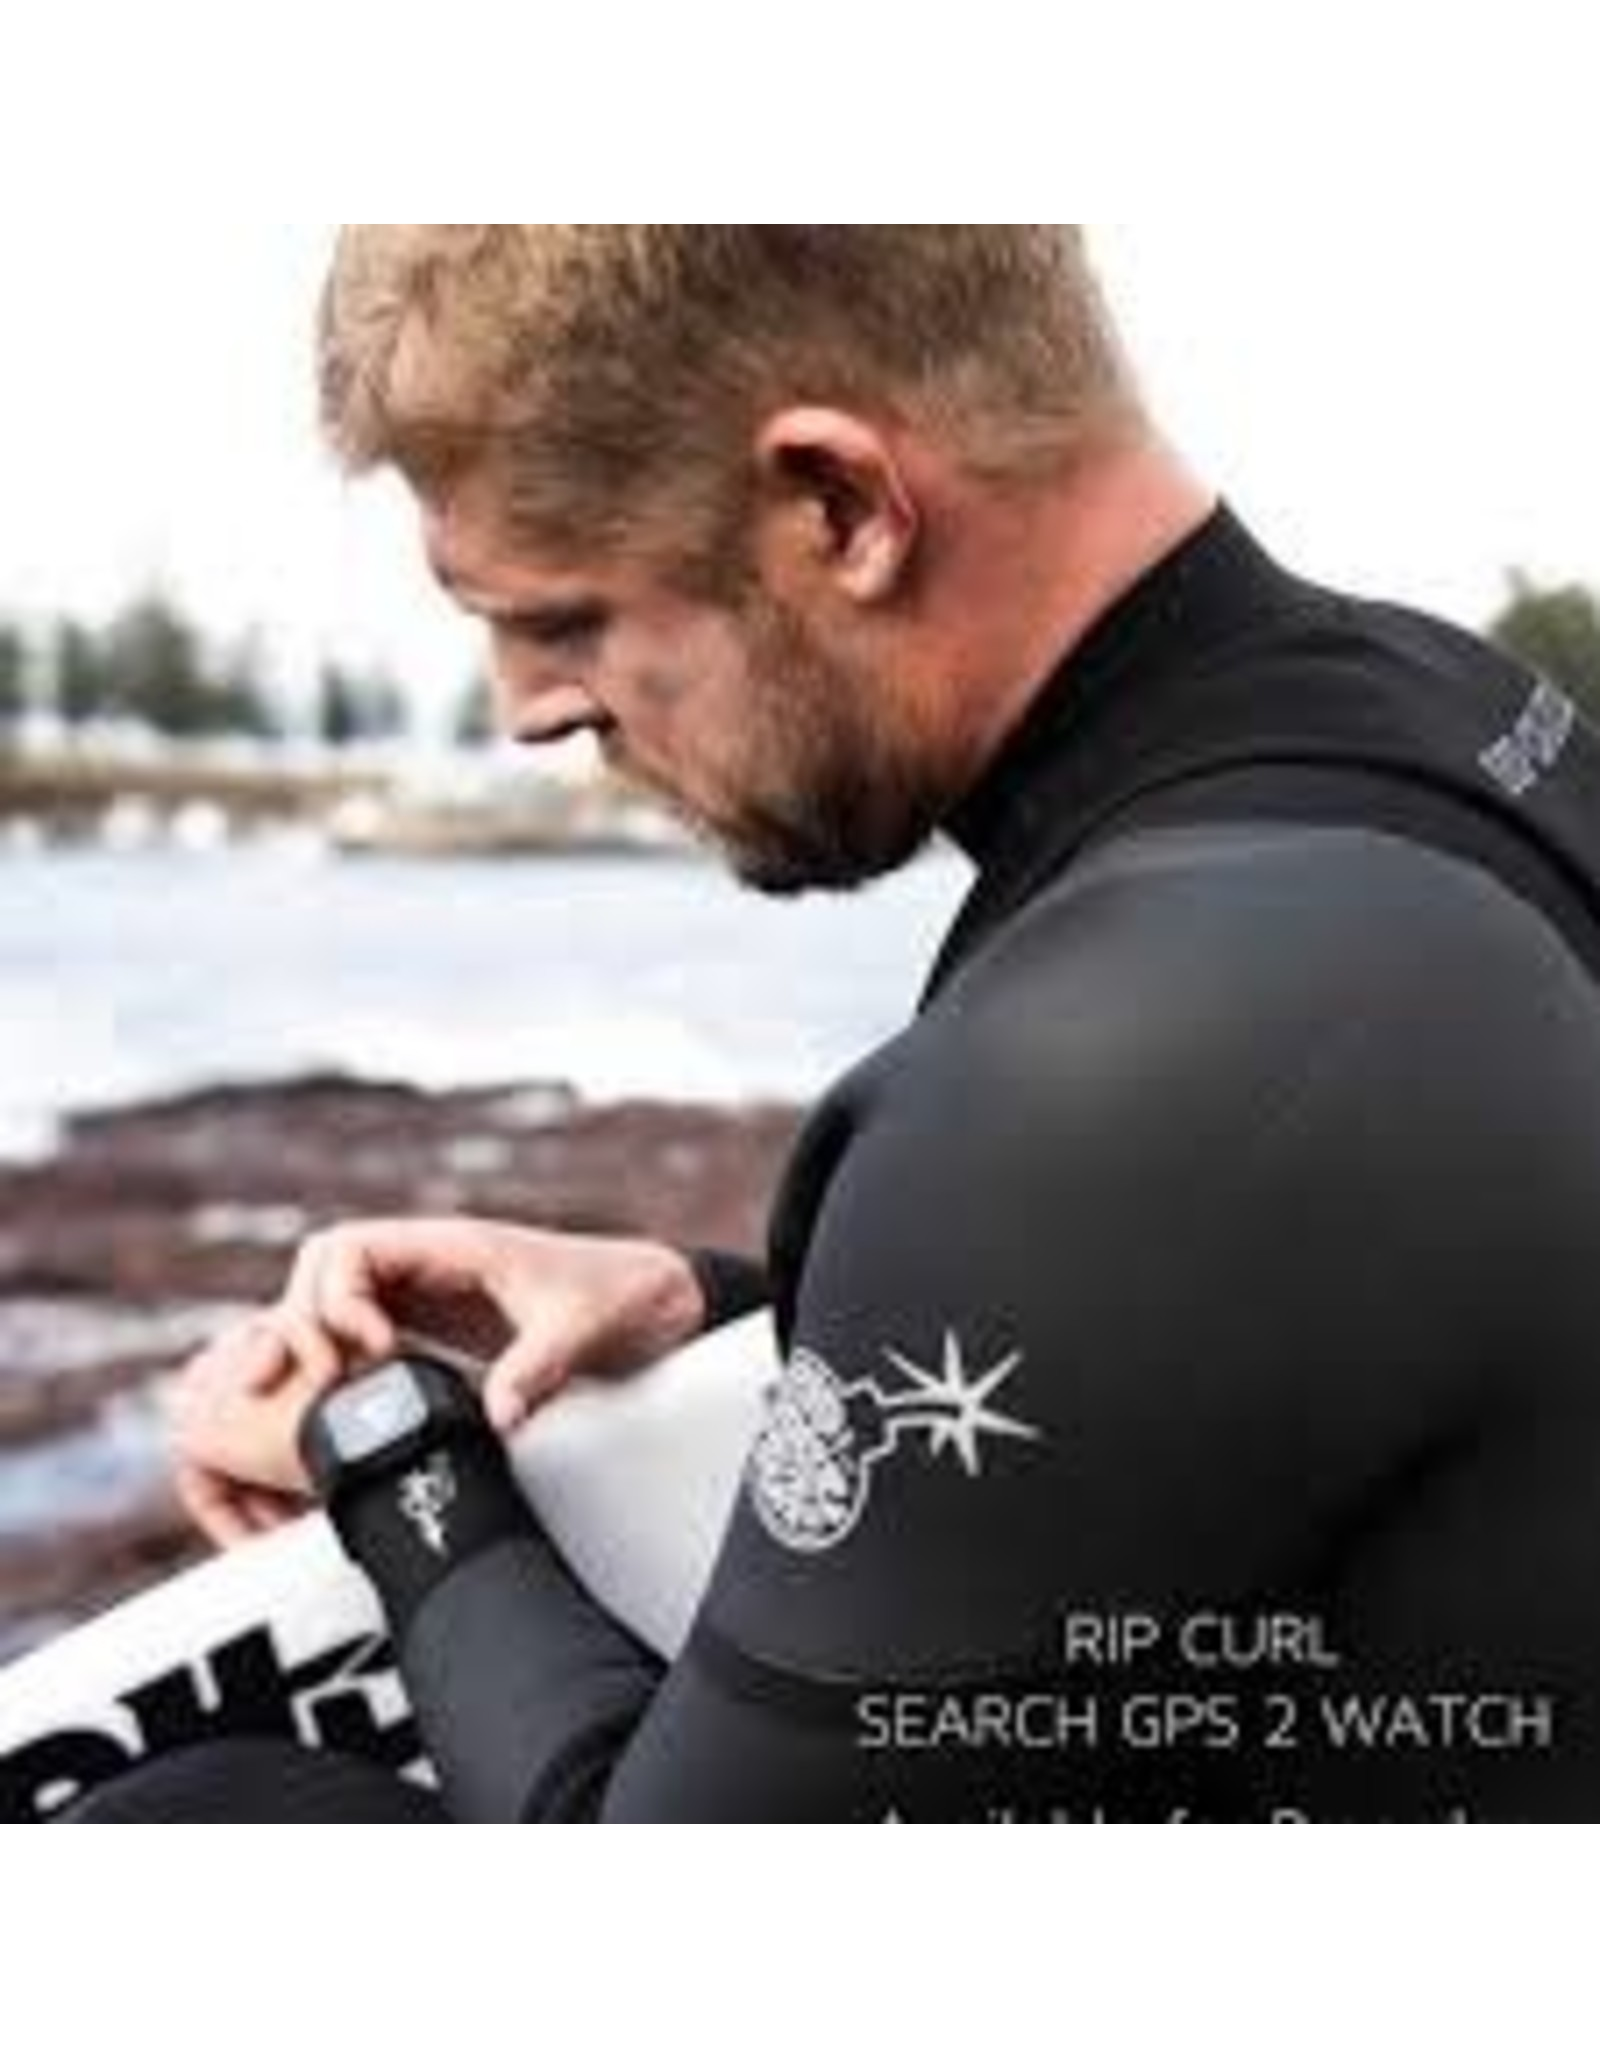 Rip Curl Rip Curl Search Gps Series 2 Watch Army